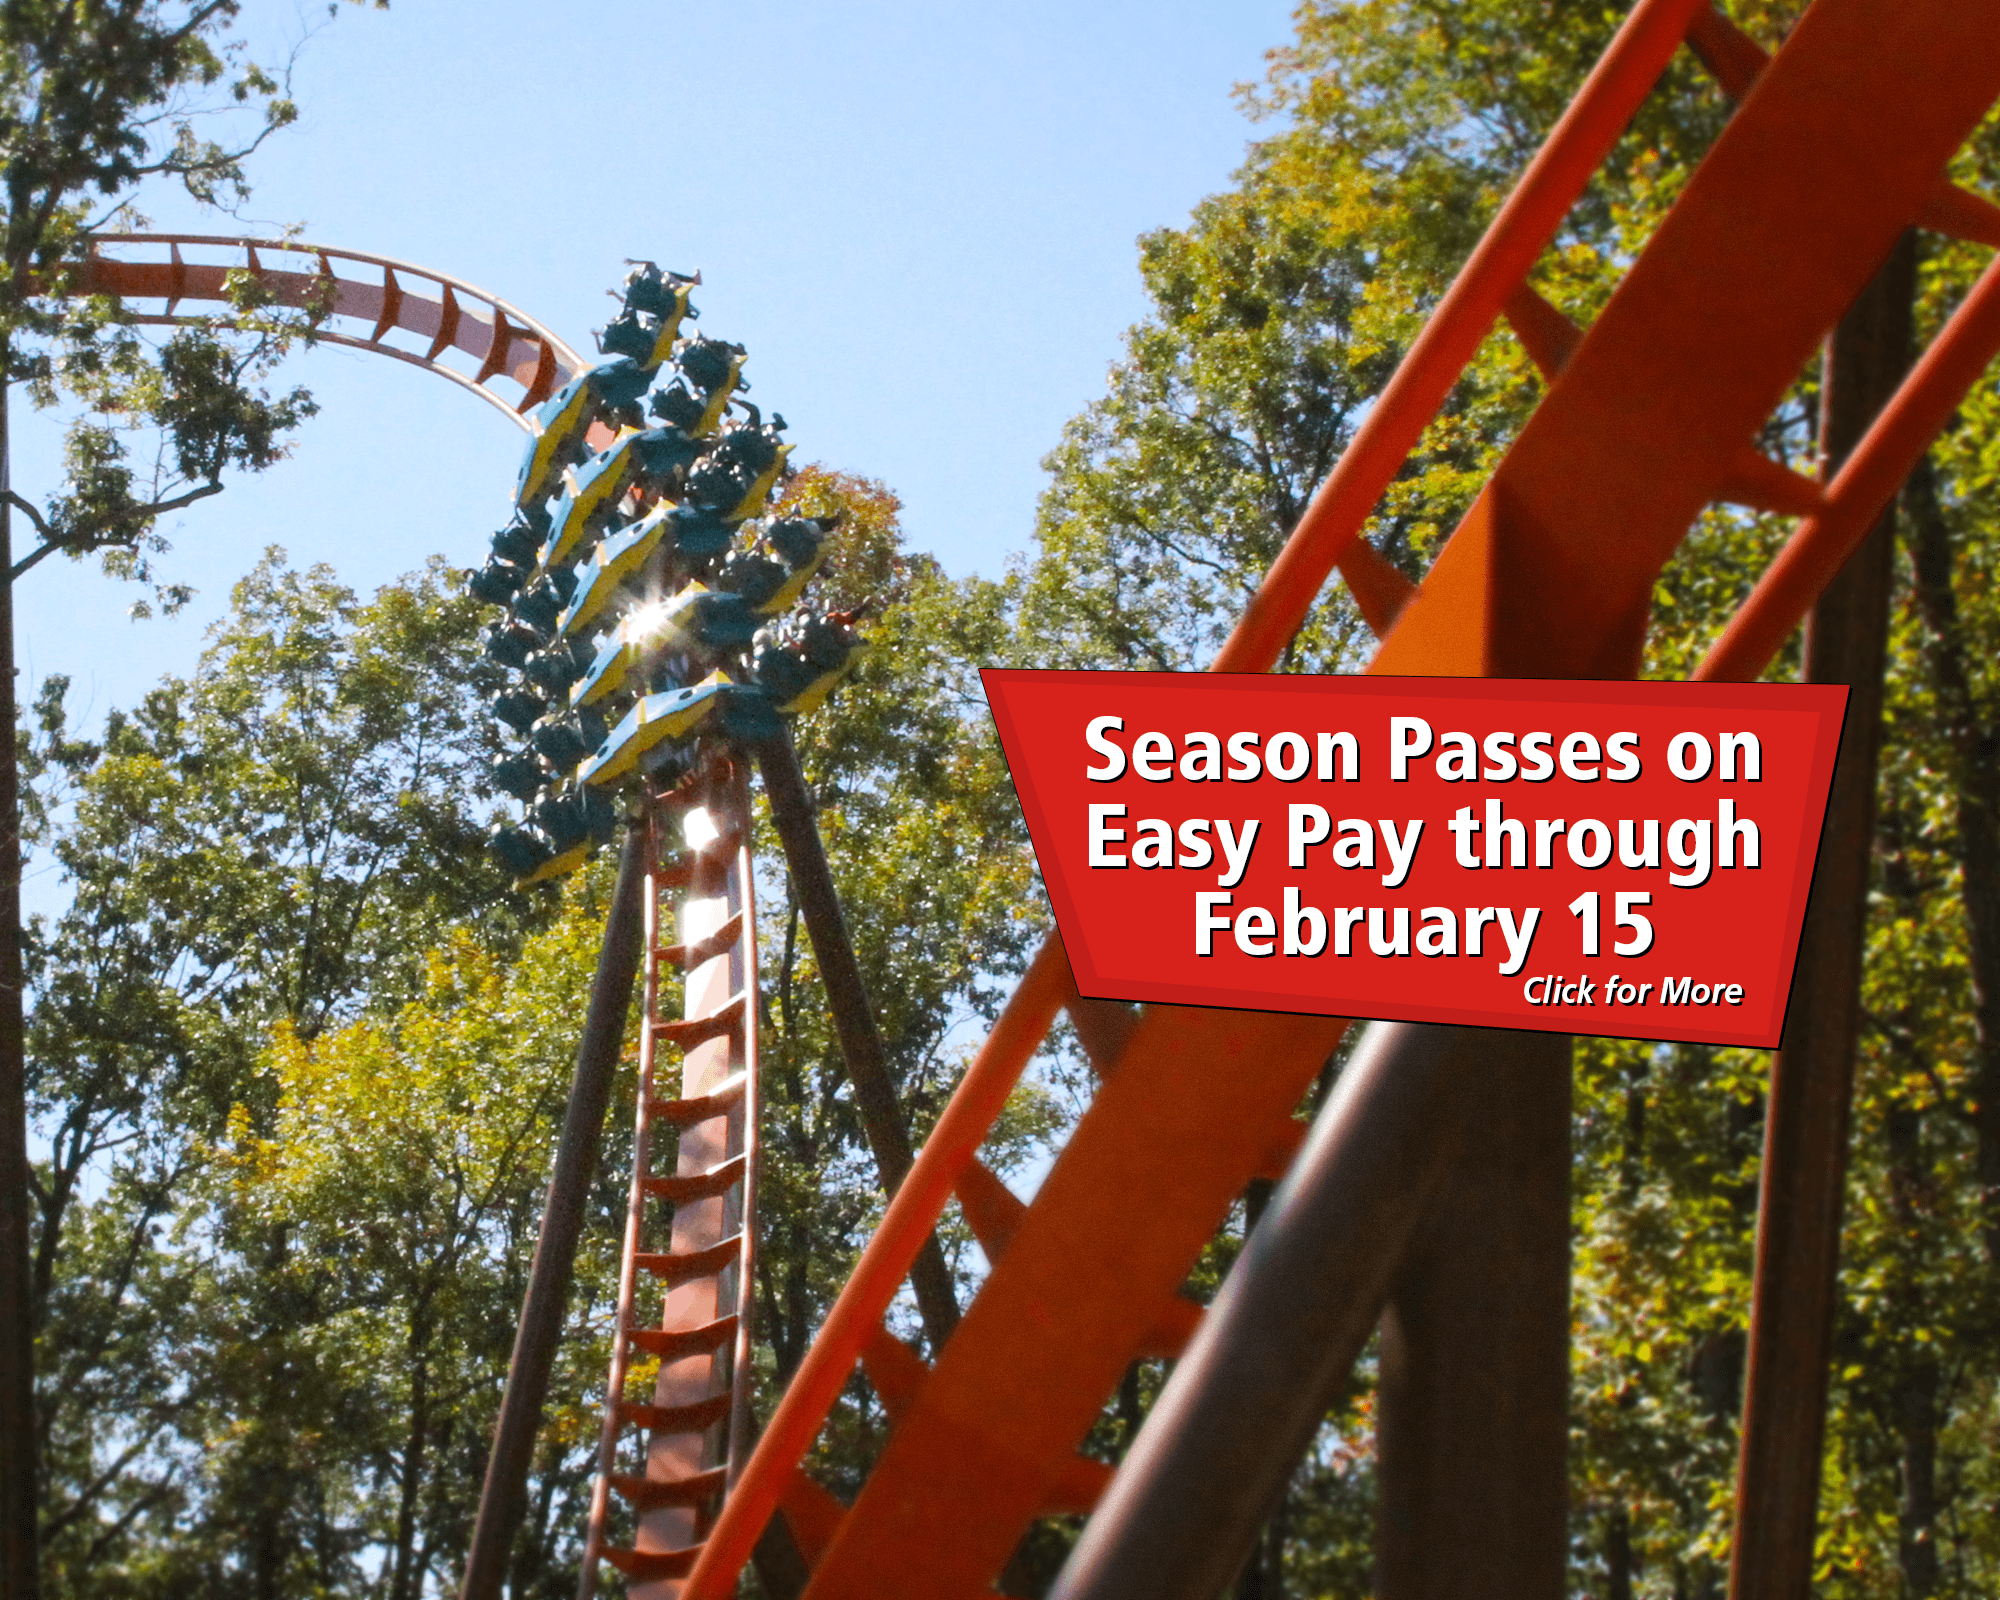 Season Passes on Easy Pay through February 15!